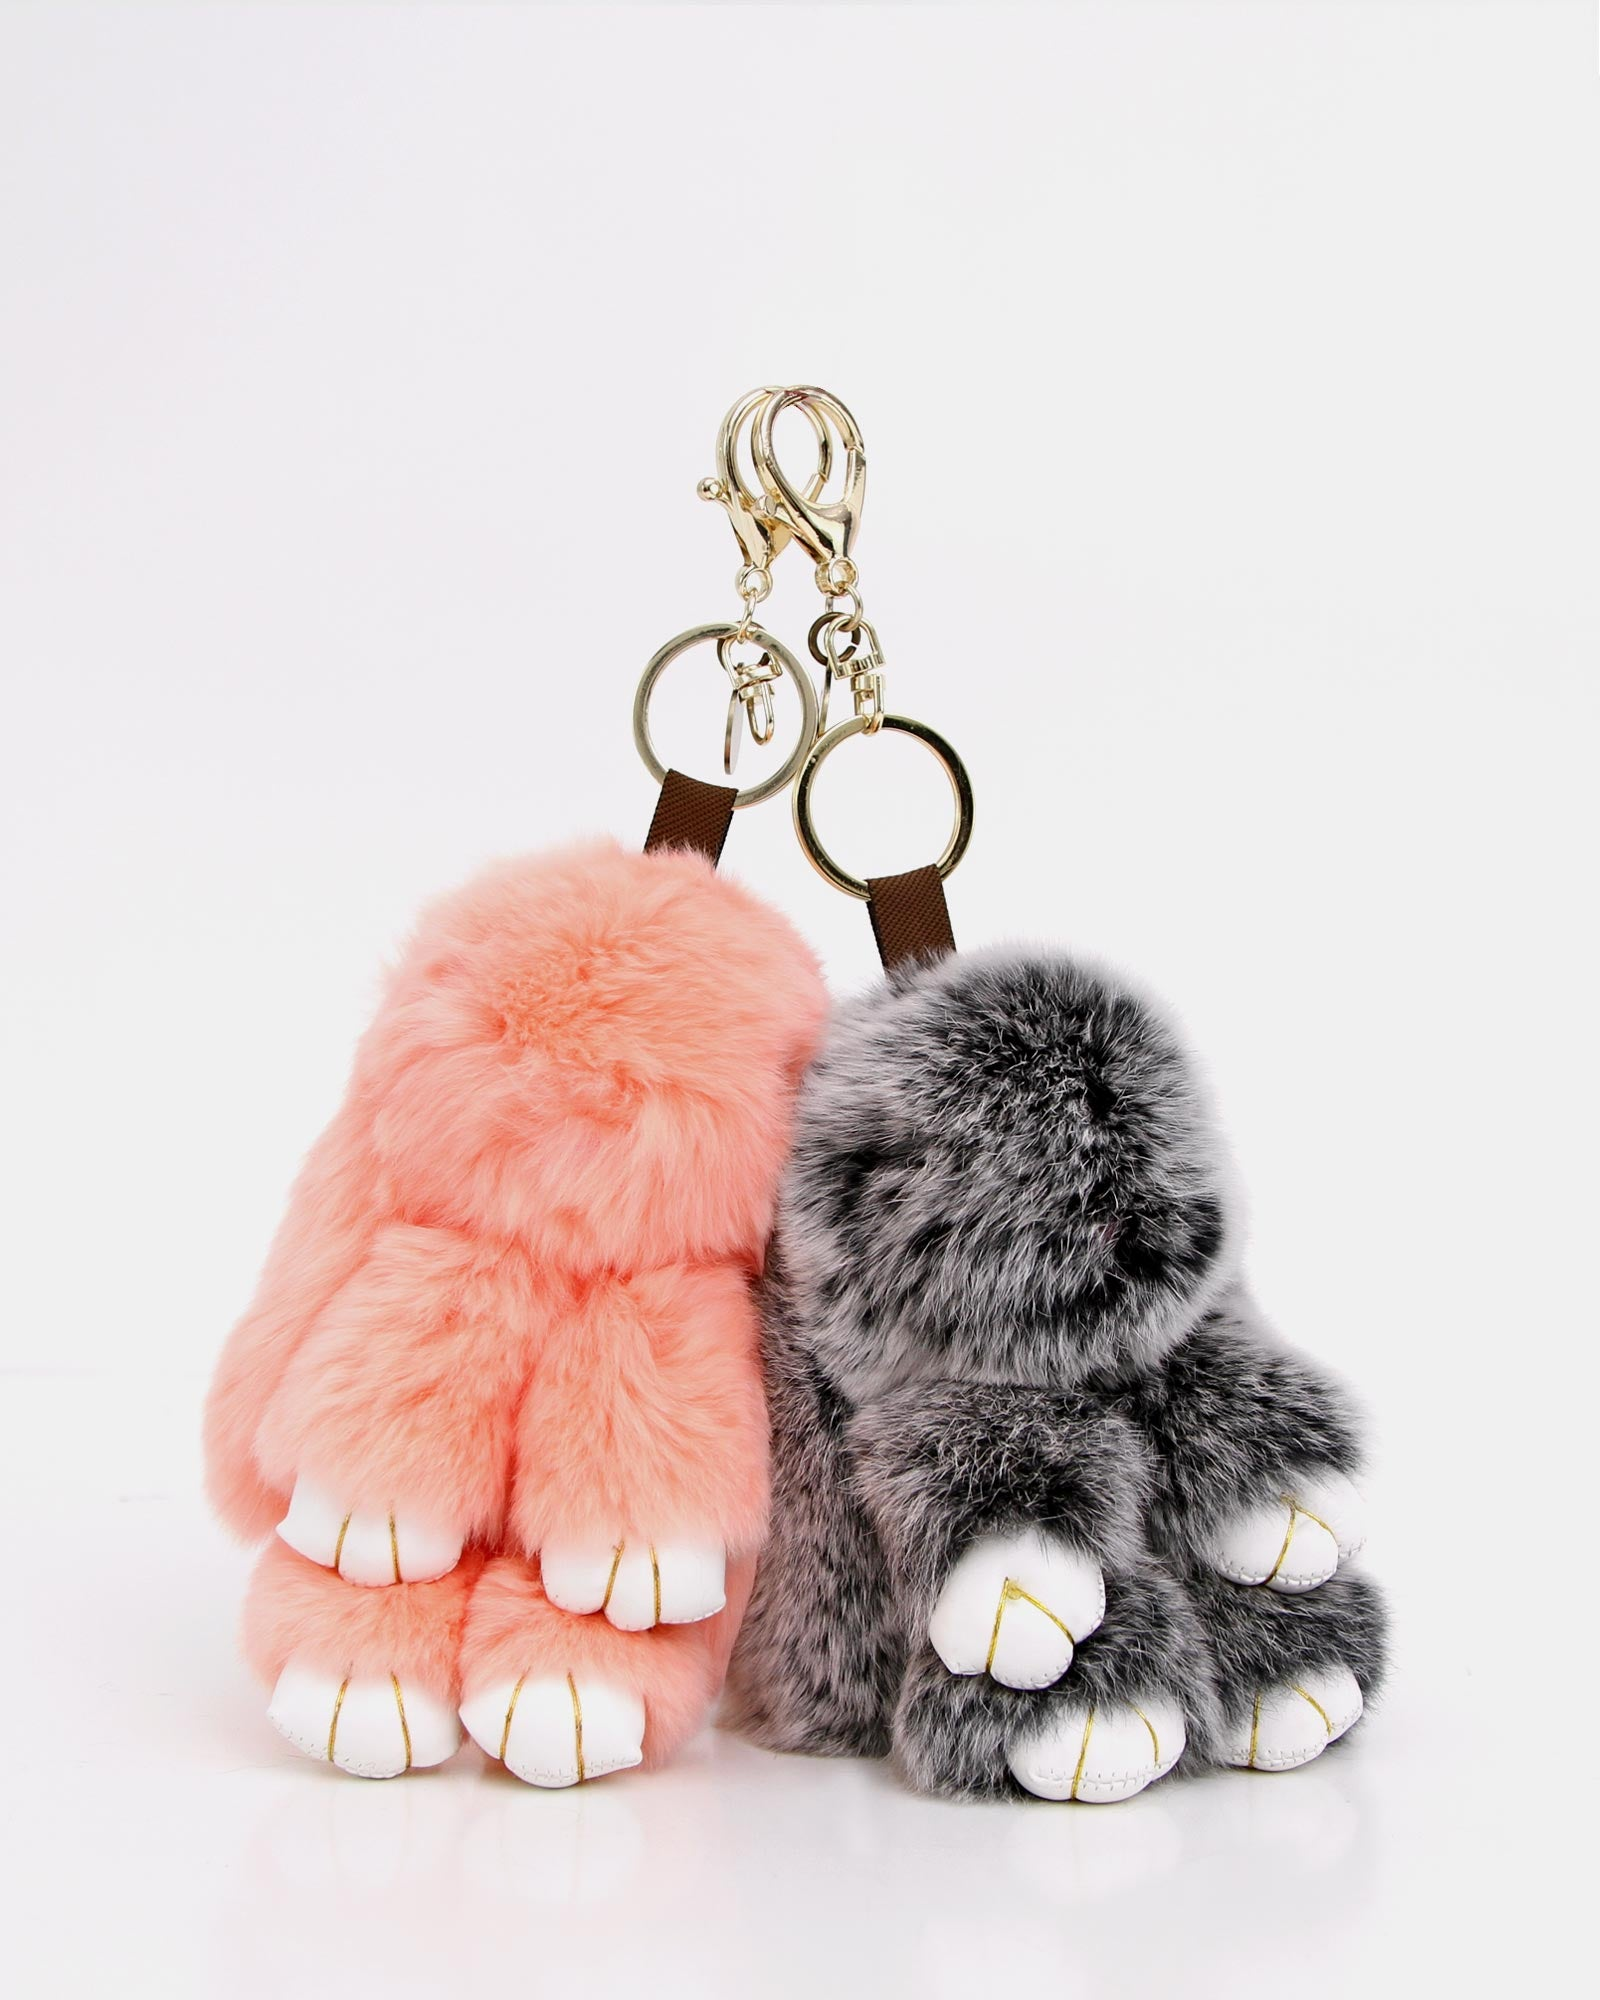 blush-and-grey-bunny-keyring.jpg